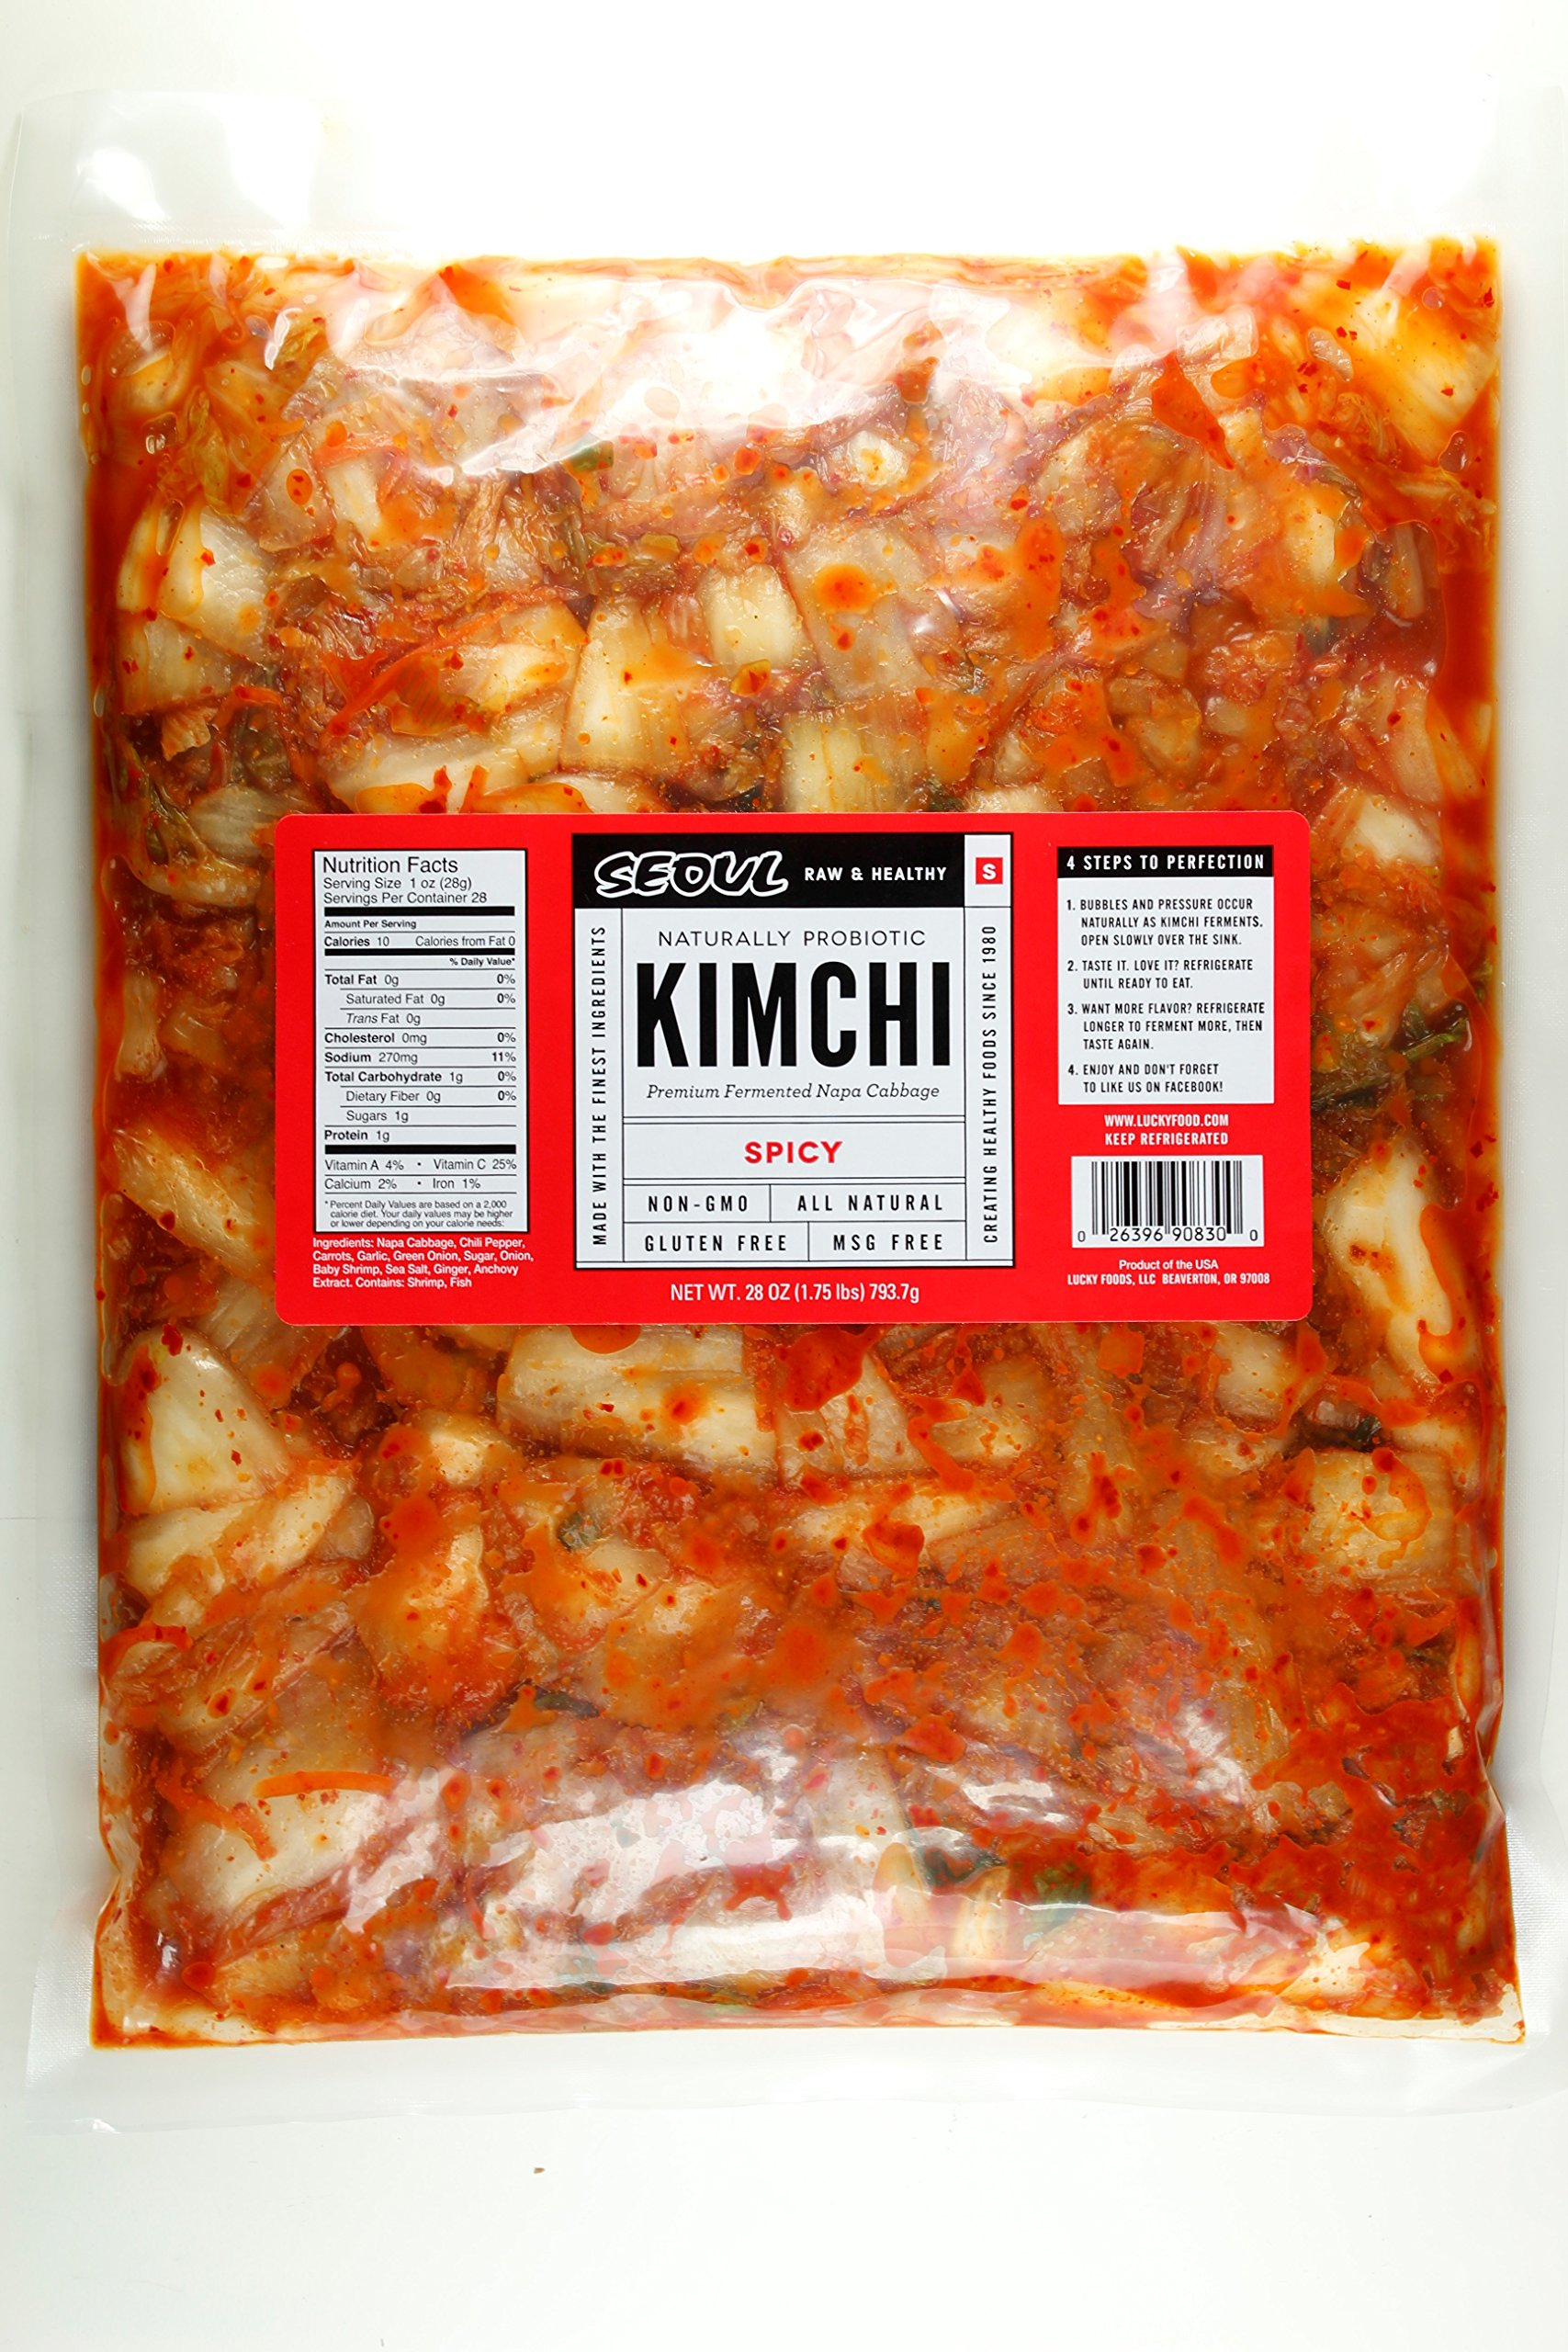 Seoul Kimchi SPICY 28oz (1.75LB) Fresh & Healthy All Natural Gluten Free MADE UPON ORDER by Lucky Foods LLC